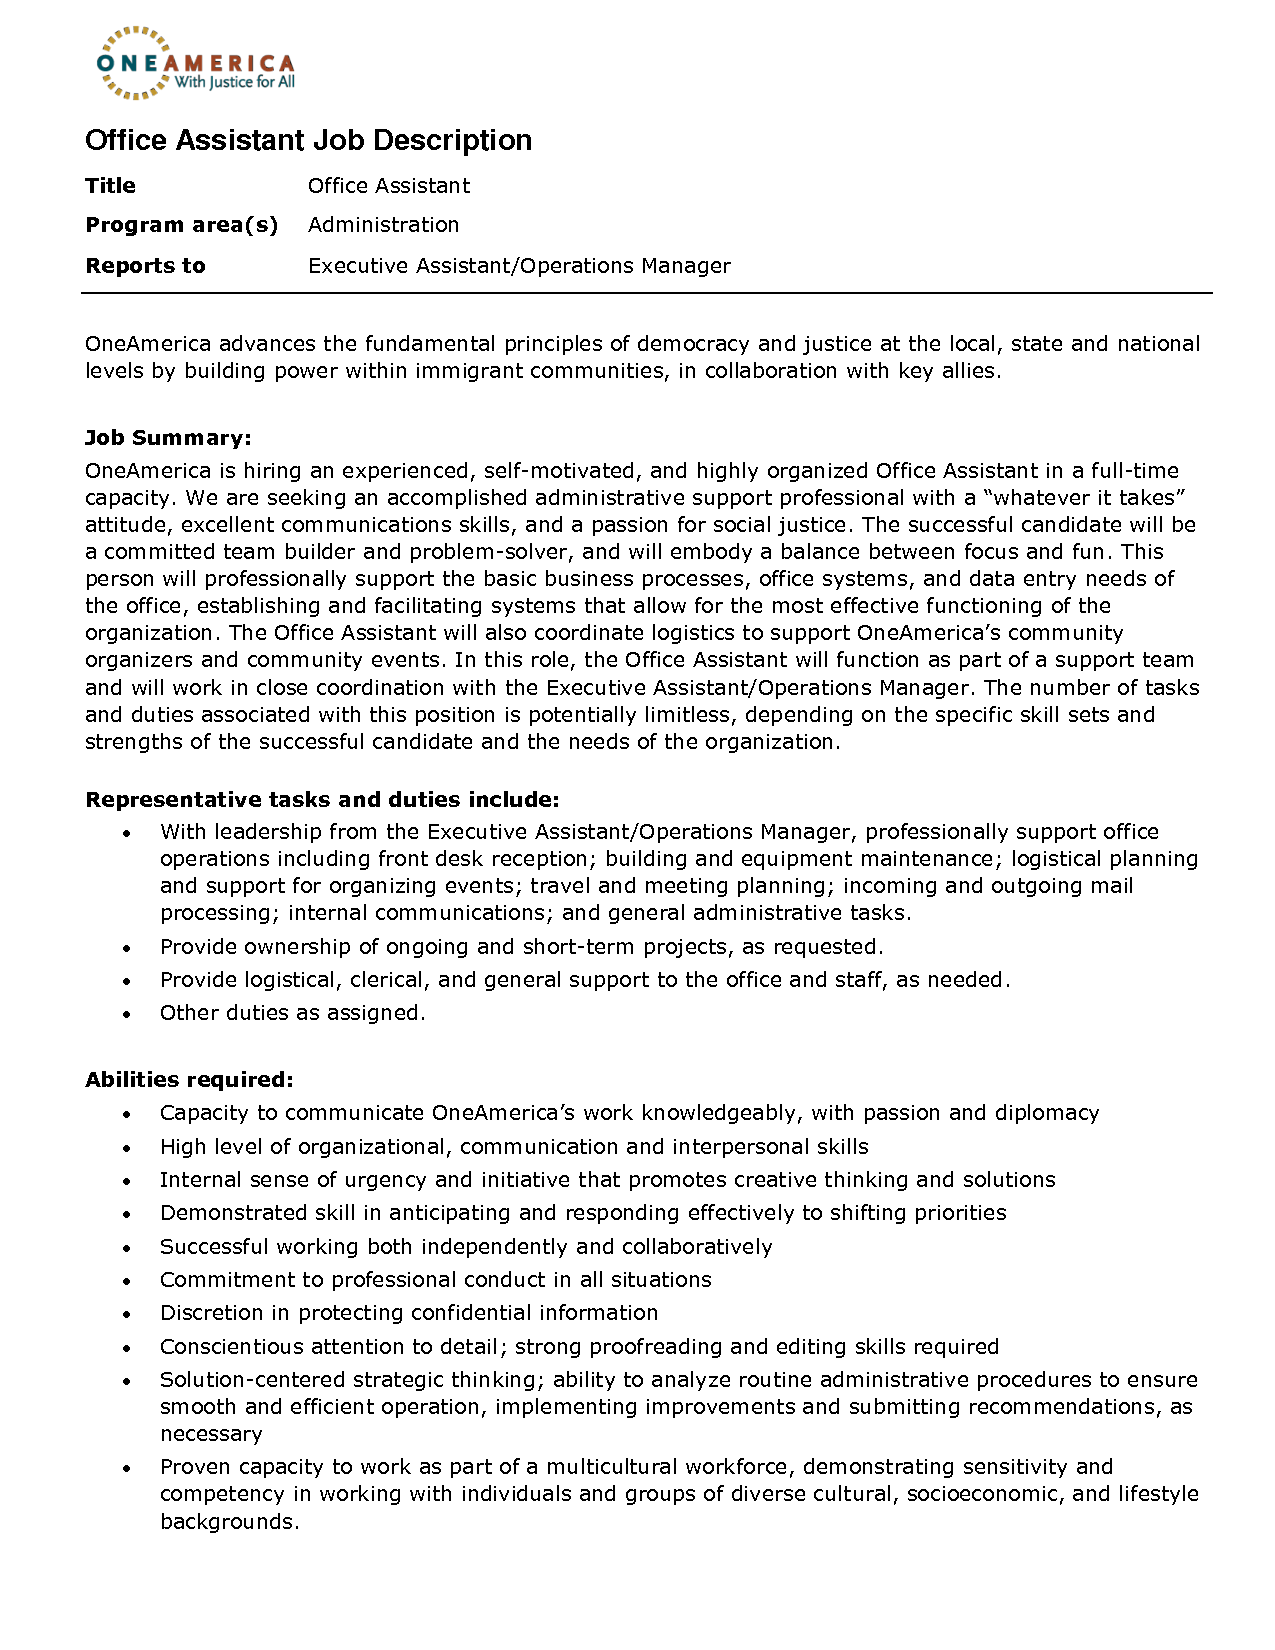 resume office assistant job description - Resumes For Office Jobs